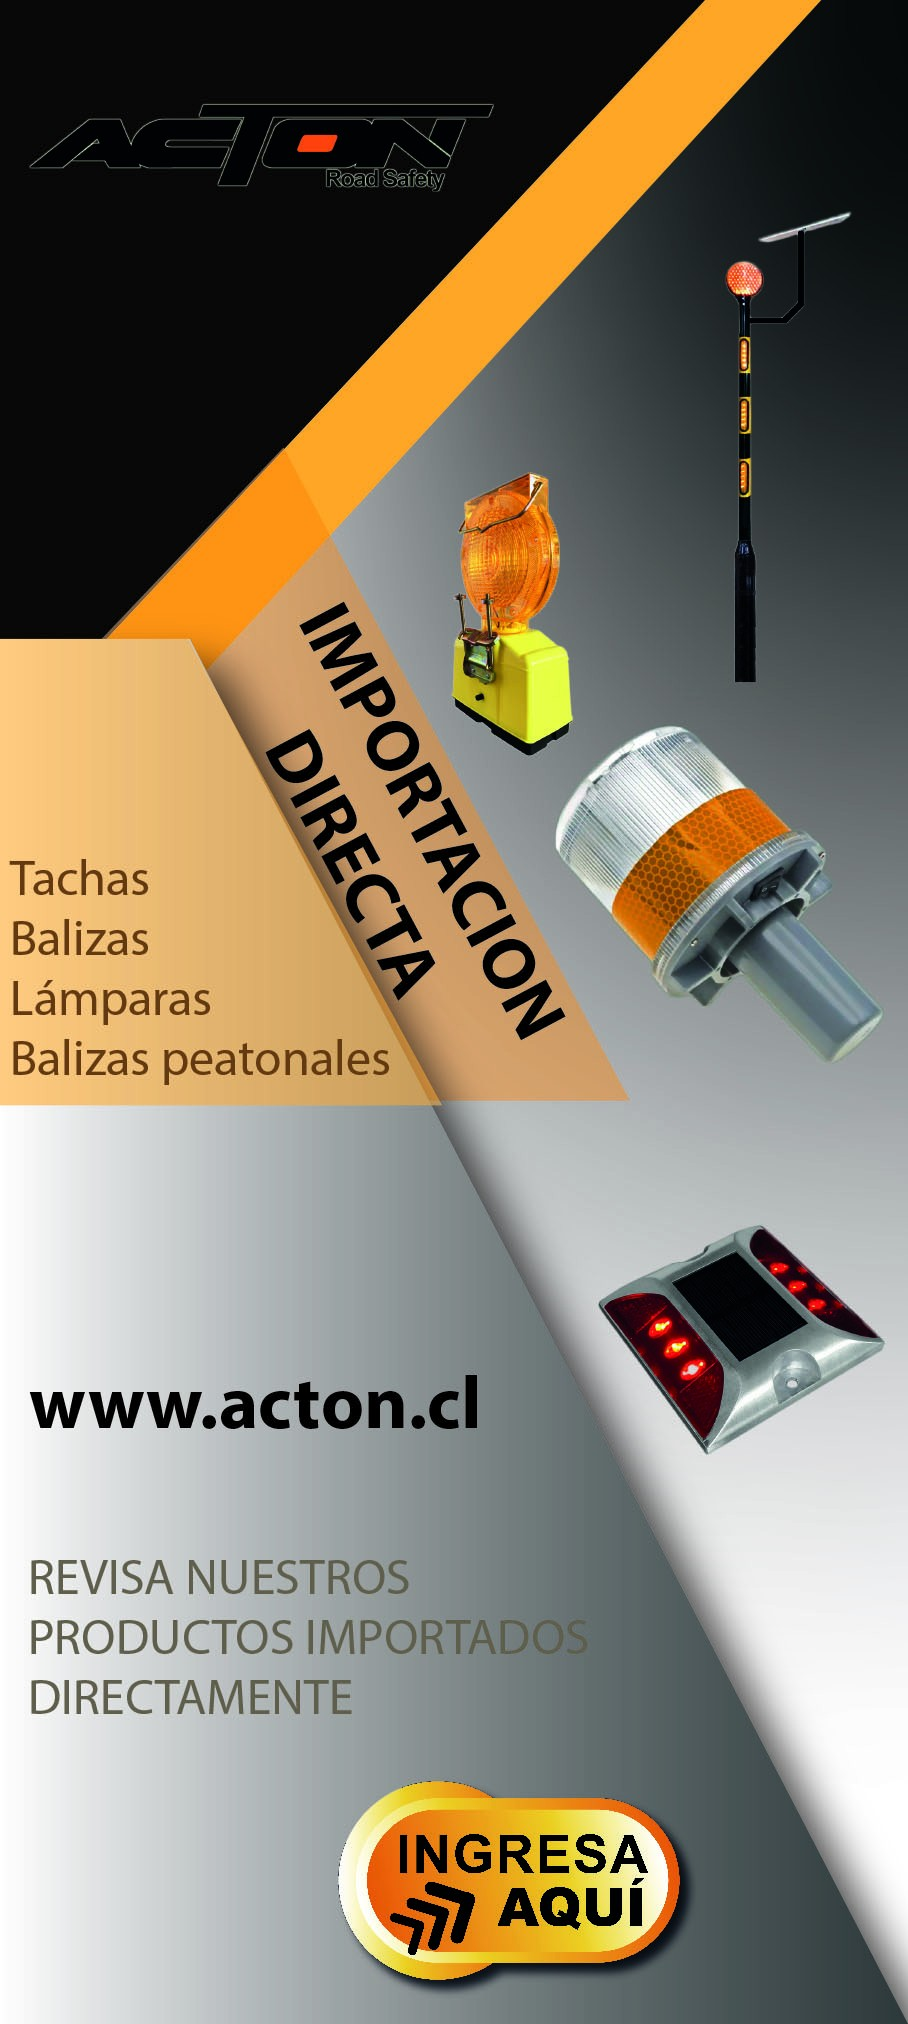 http://www.seguridad-vial.cl/modules/iqithtmlandbanners/uploads/images/605107ff8f67c.jpg